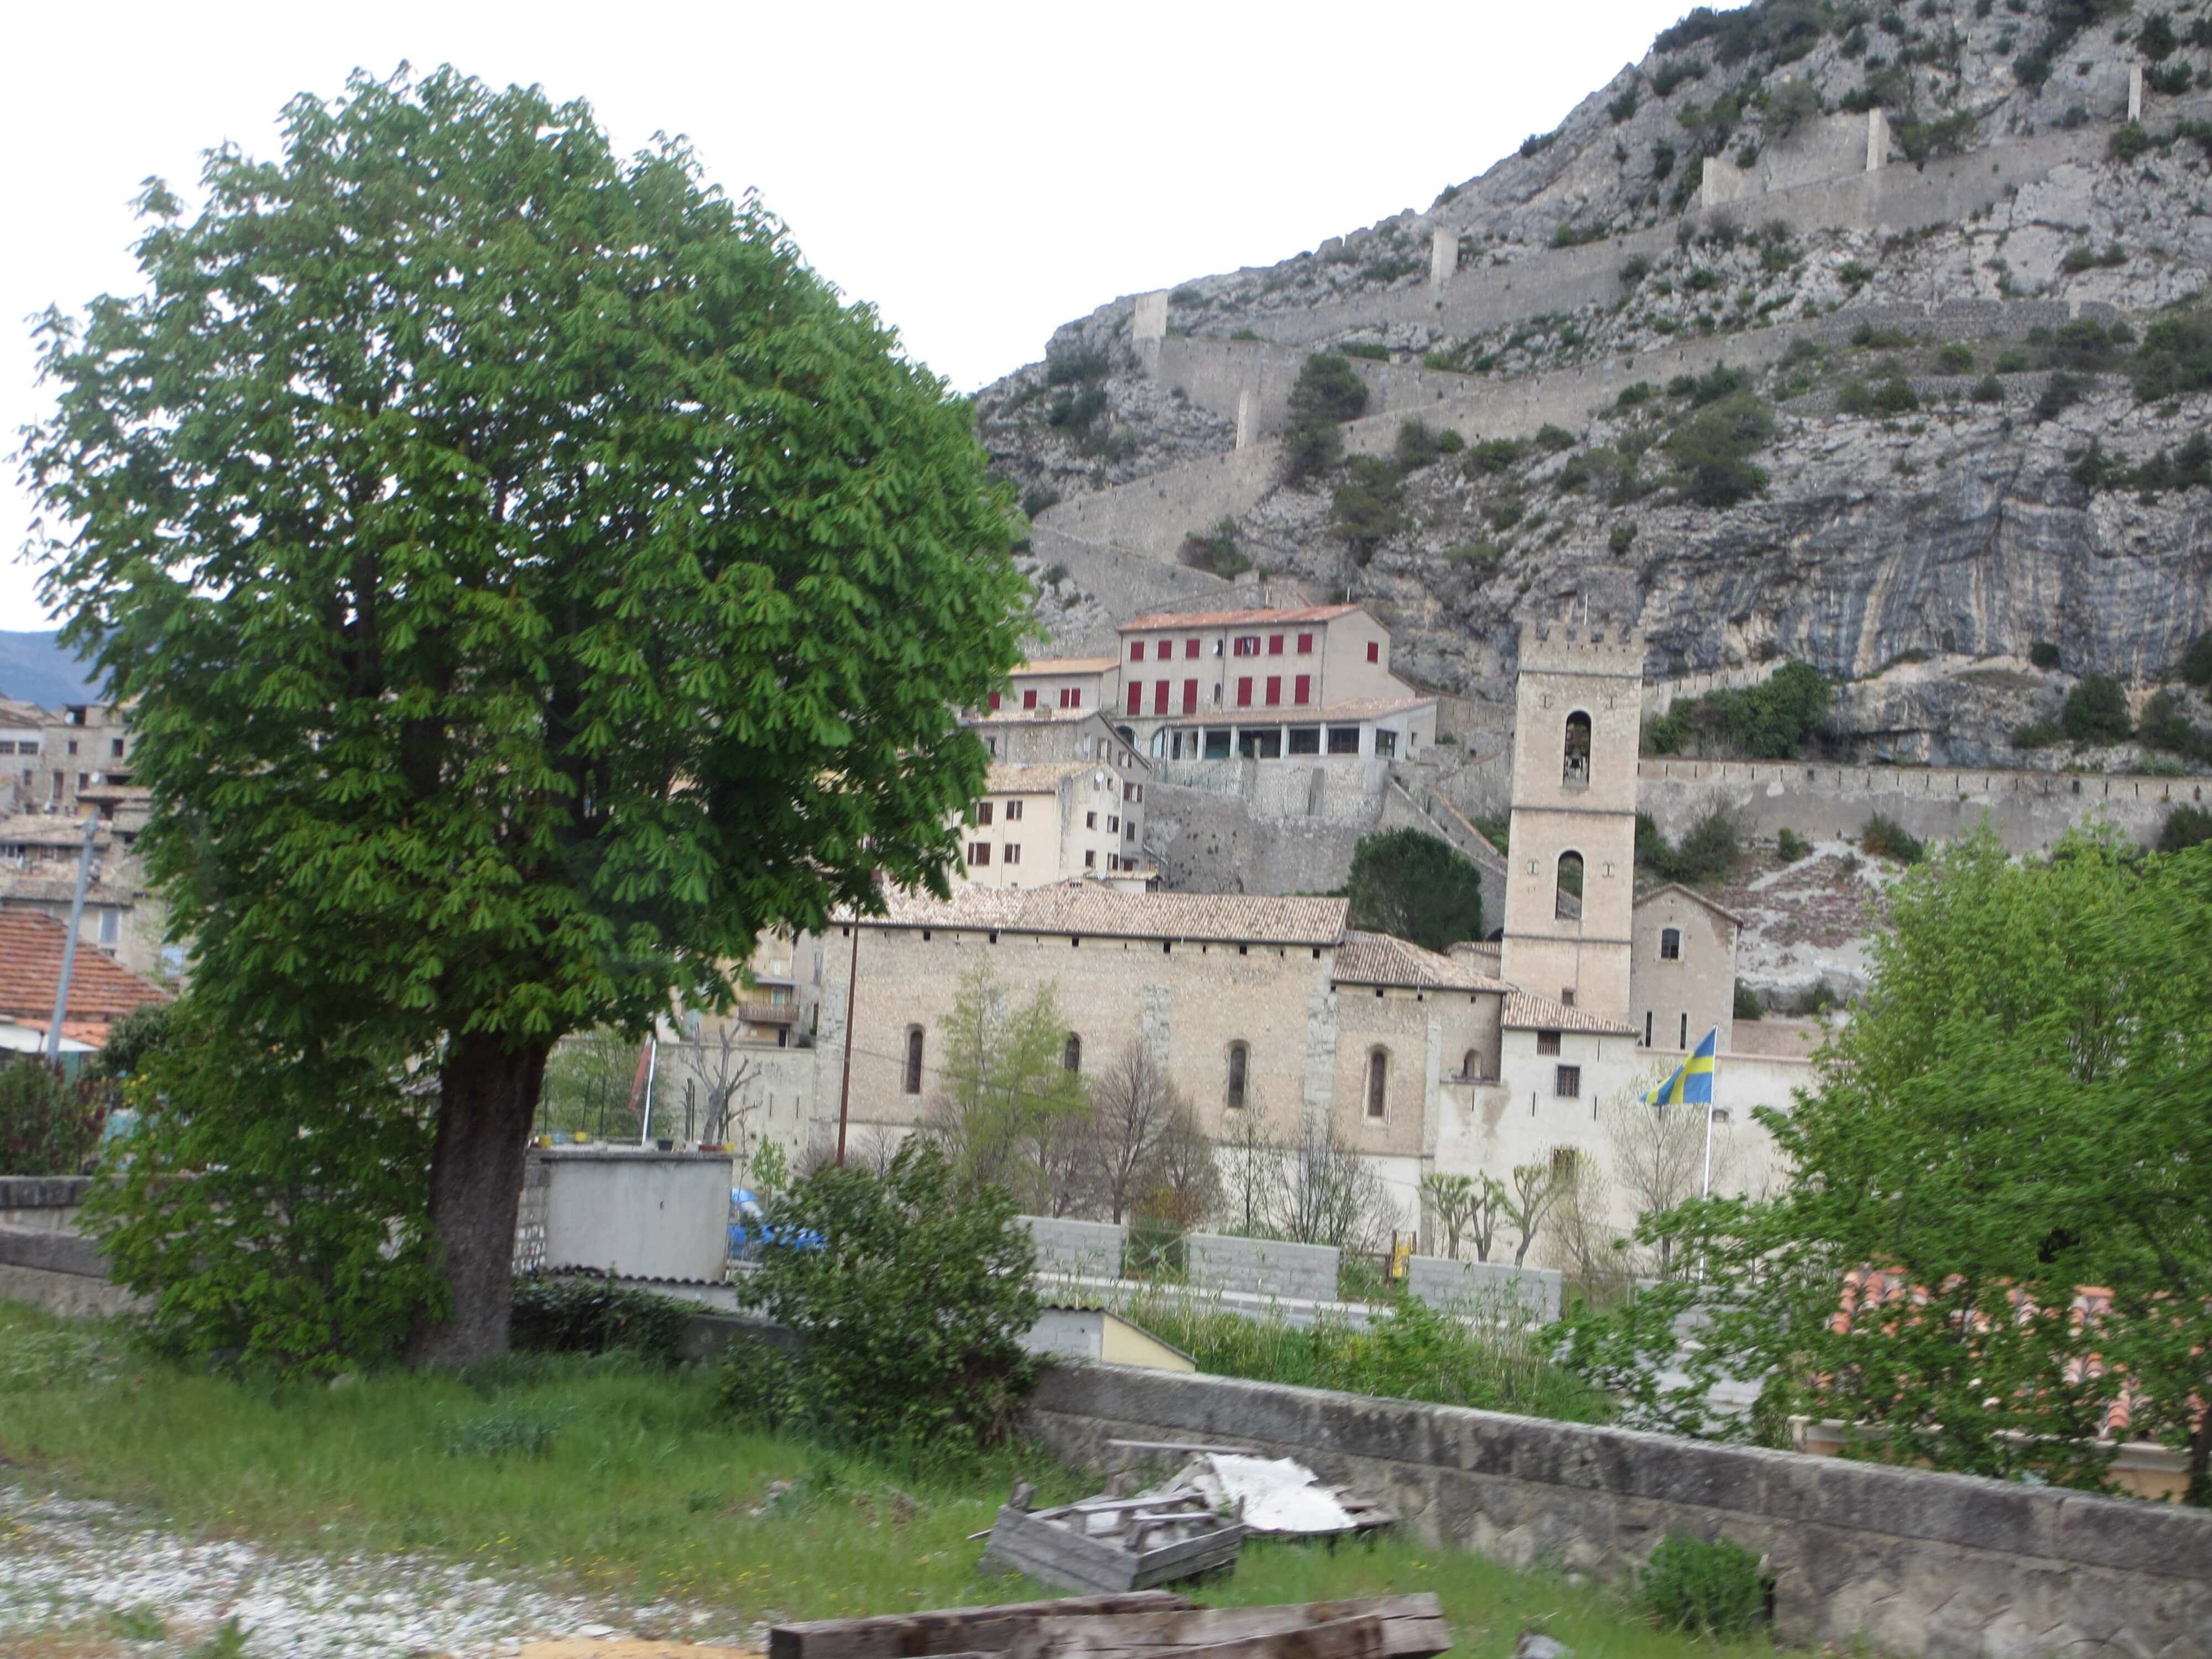 On the way to Digne-les-bains